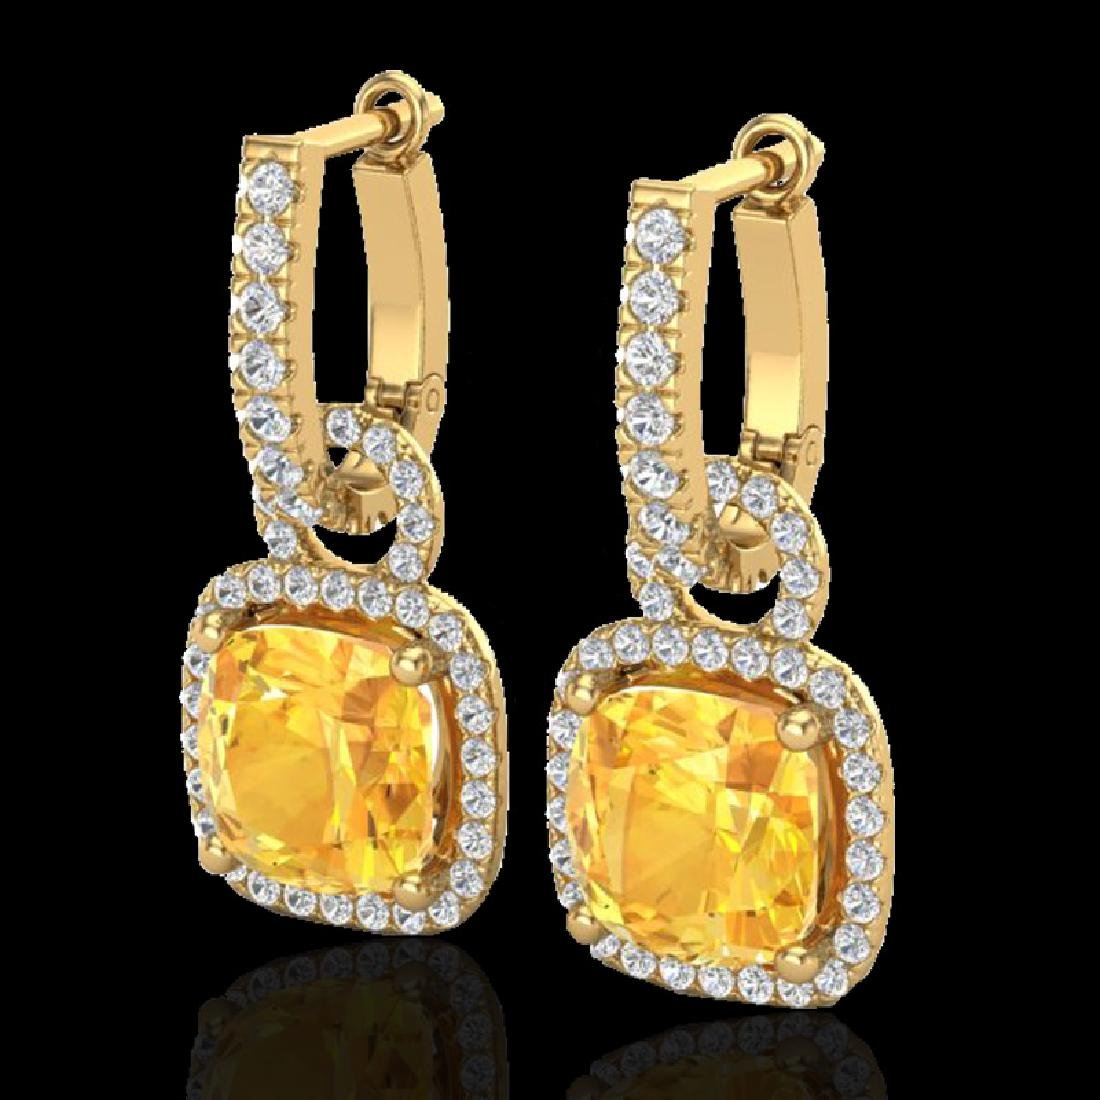 7 CTW Citrine & Micro Pave VS/SI Diamond Earrings 18K